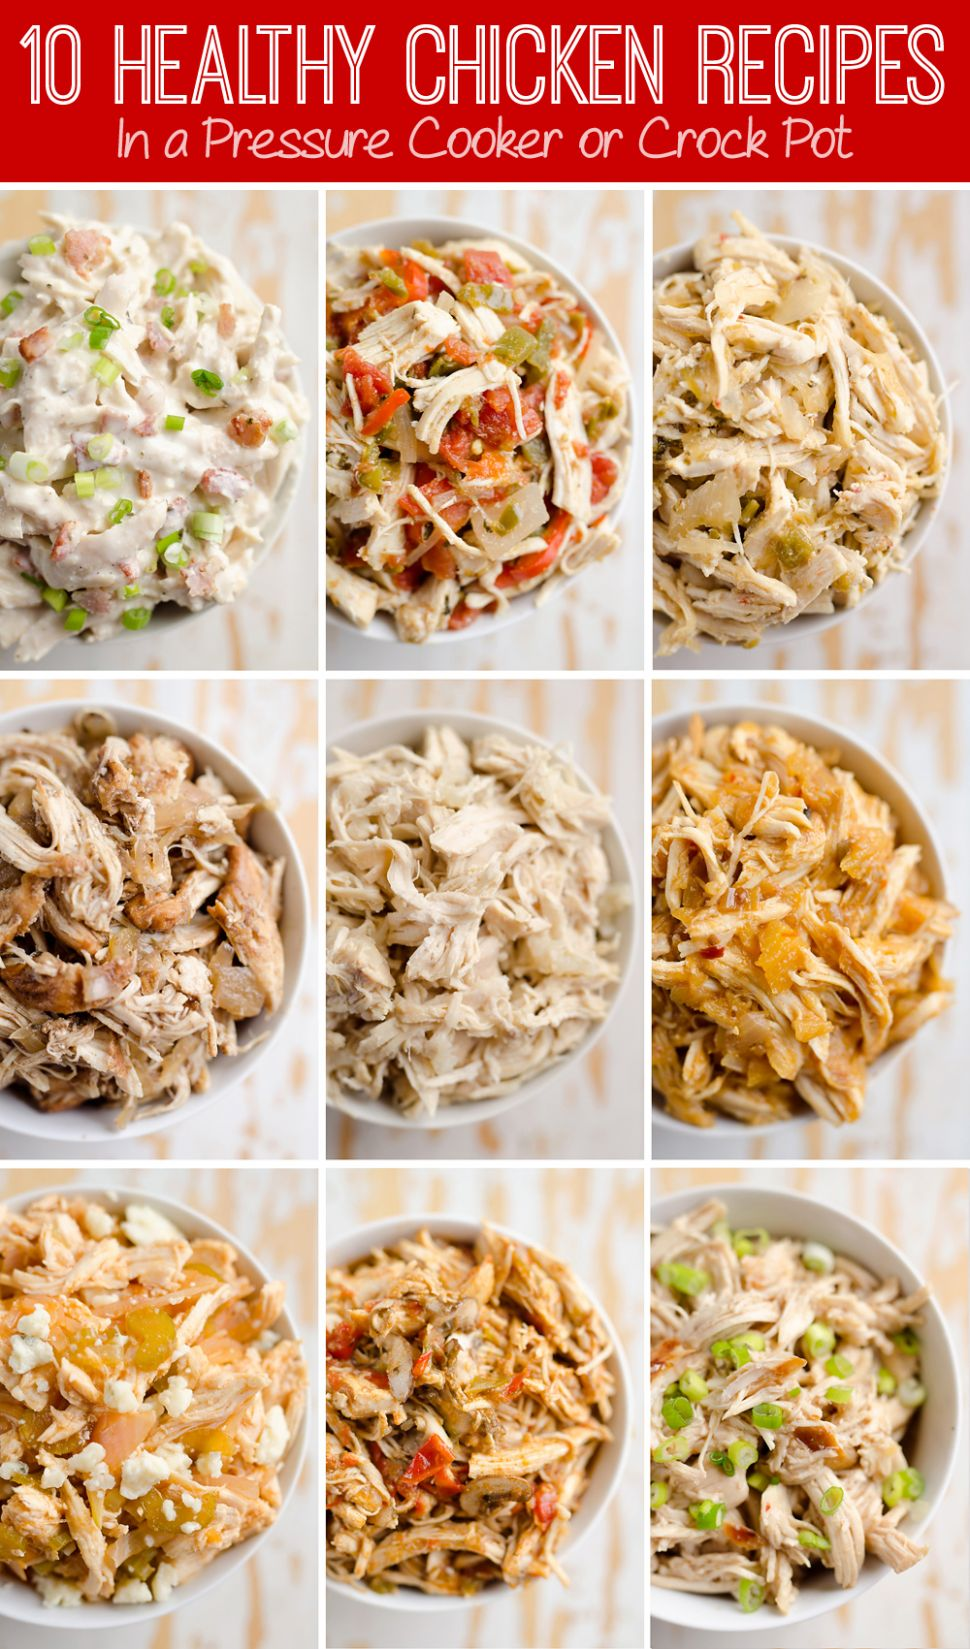 12 Healthy Chicken Recipes in a Pressure Cooker or Crock Pot